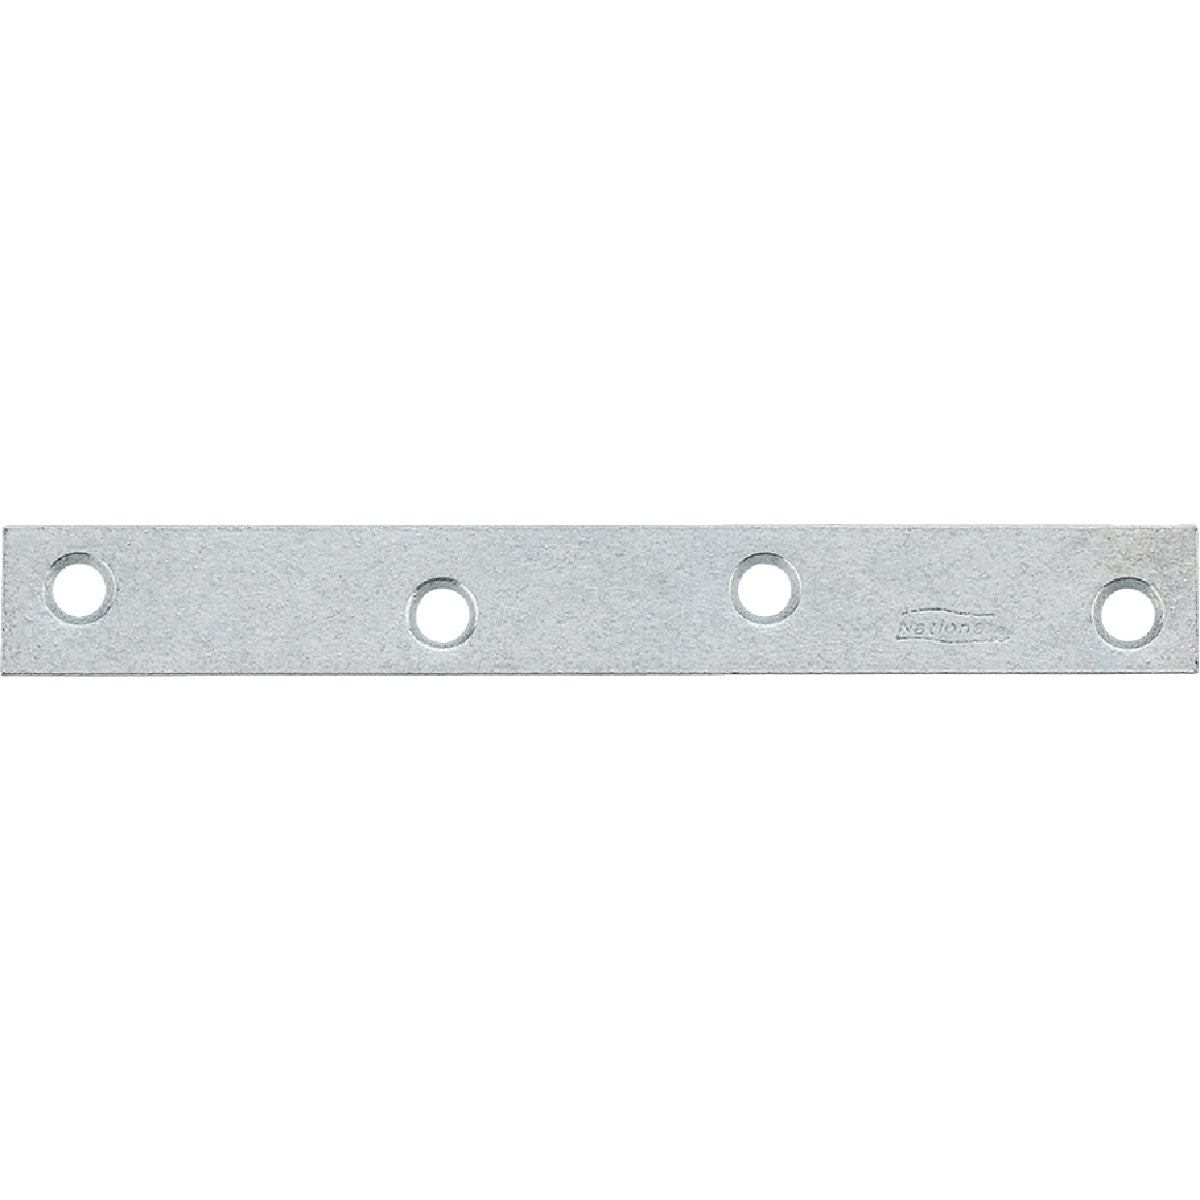 "6"" GALV MENDING BRACE - N220343 by National Mfg Co"